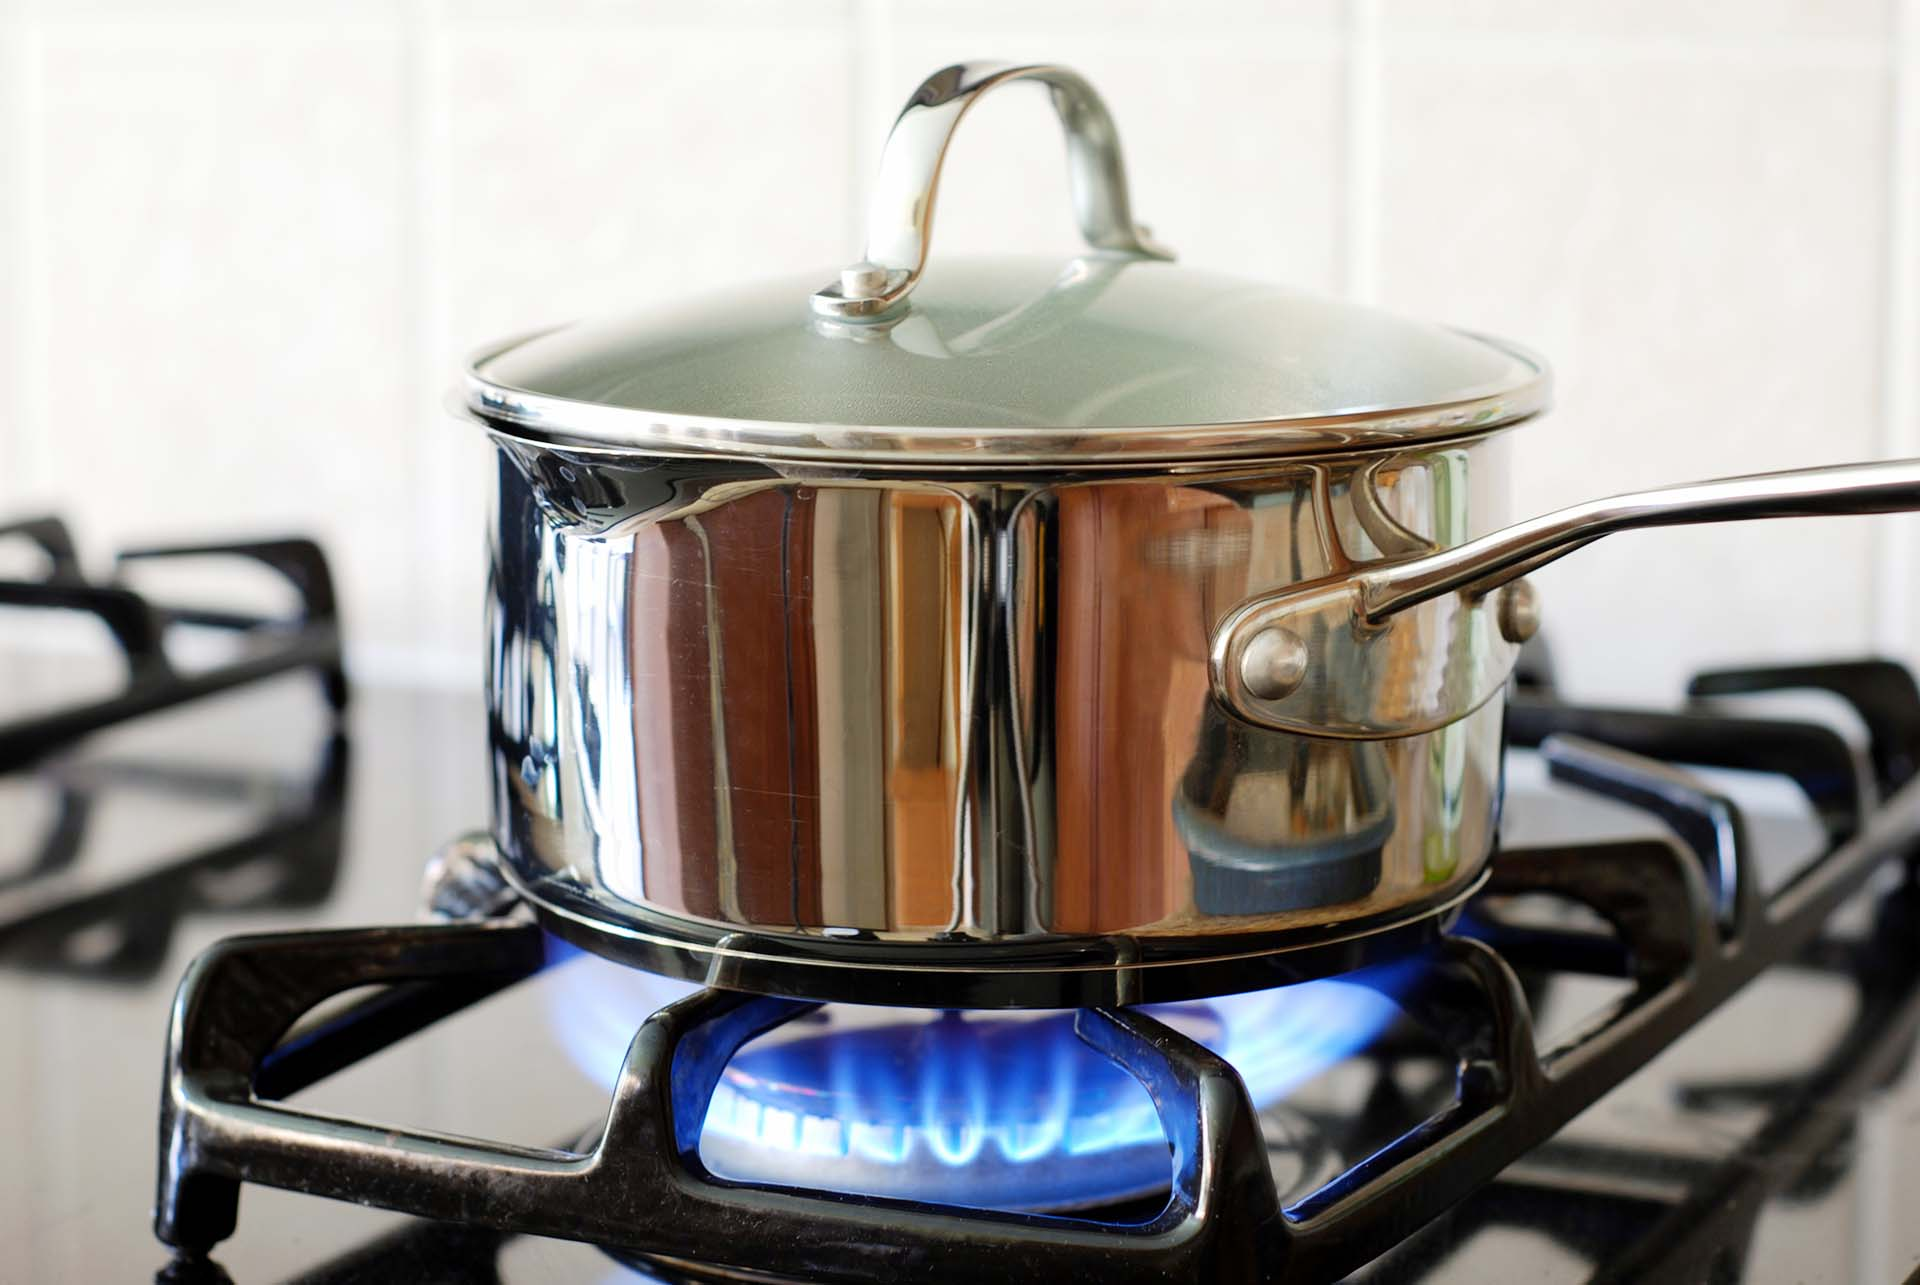 A covered stainless steel pot on a gas burner that is on.